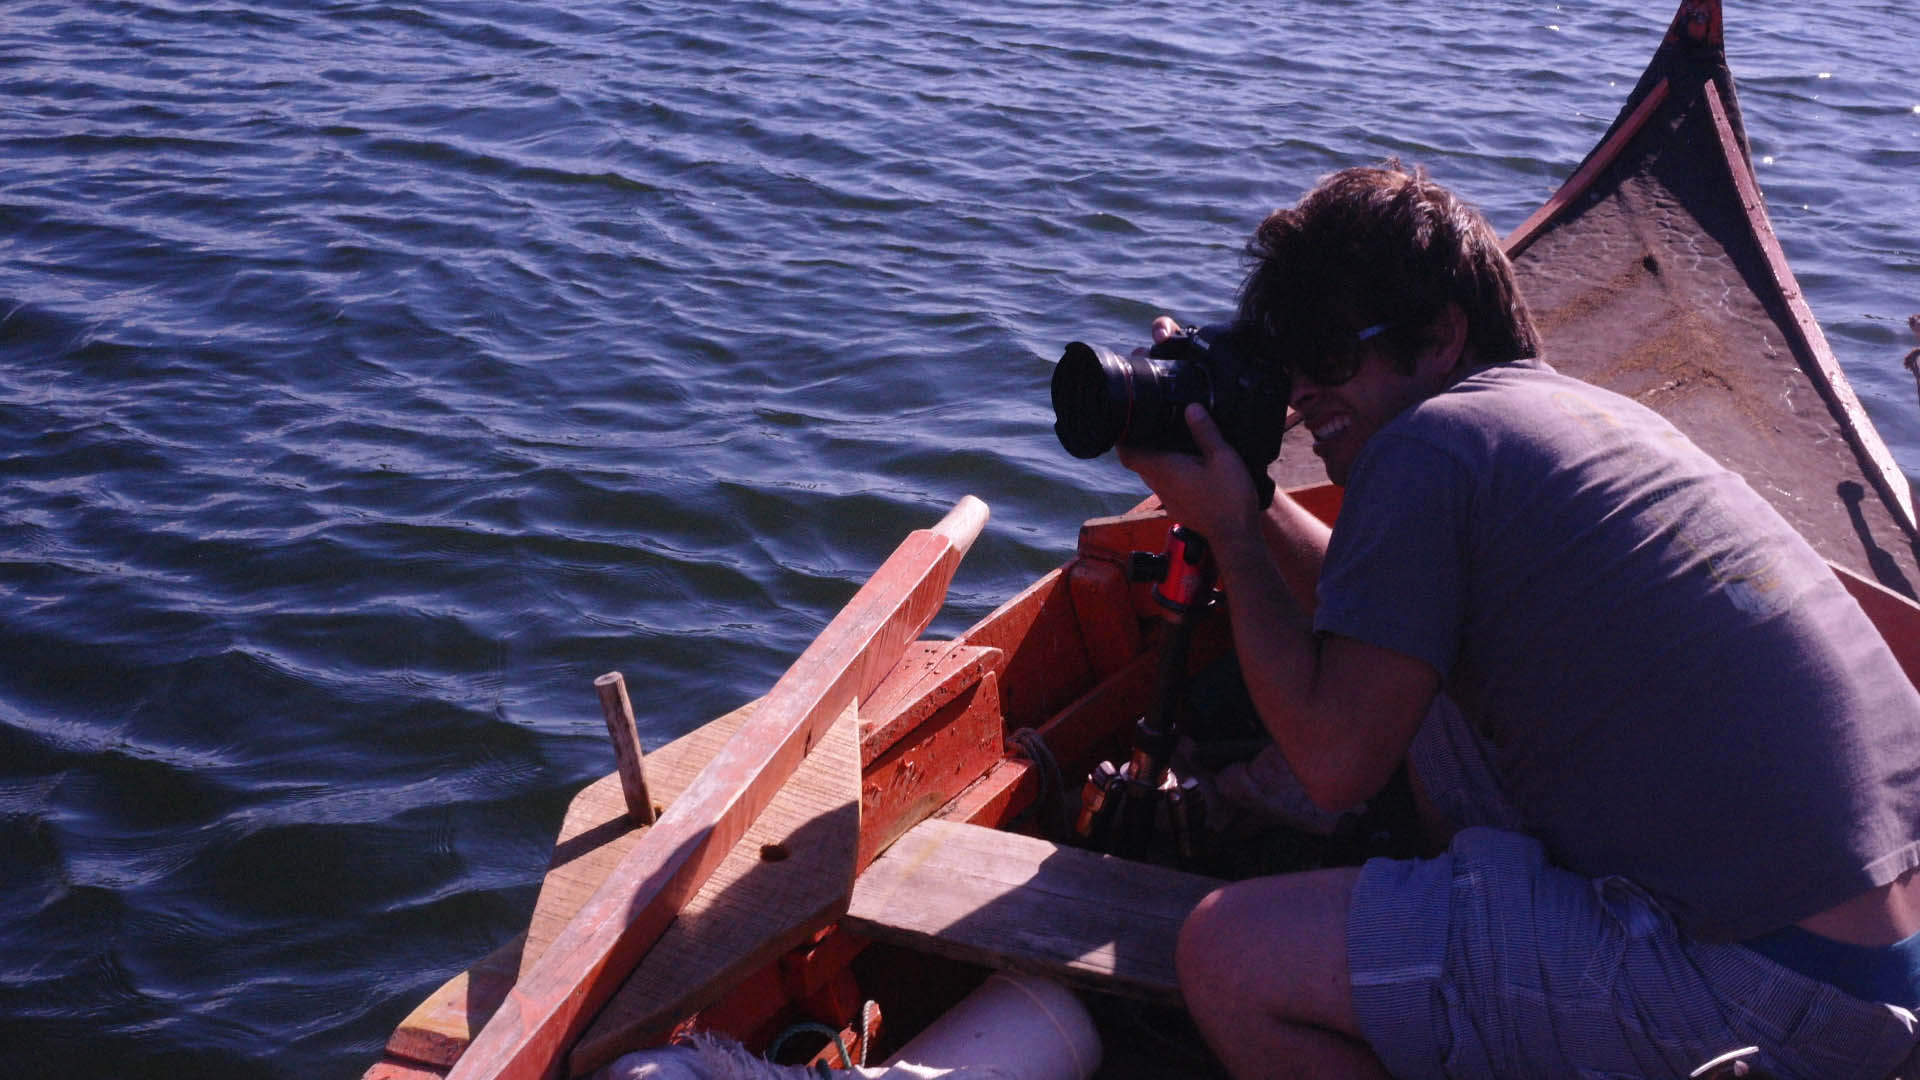 Using the tripod on a boat from such a low angle gave me the small bit of stability I needed to get the shot.